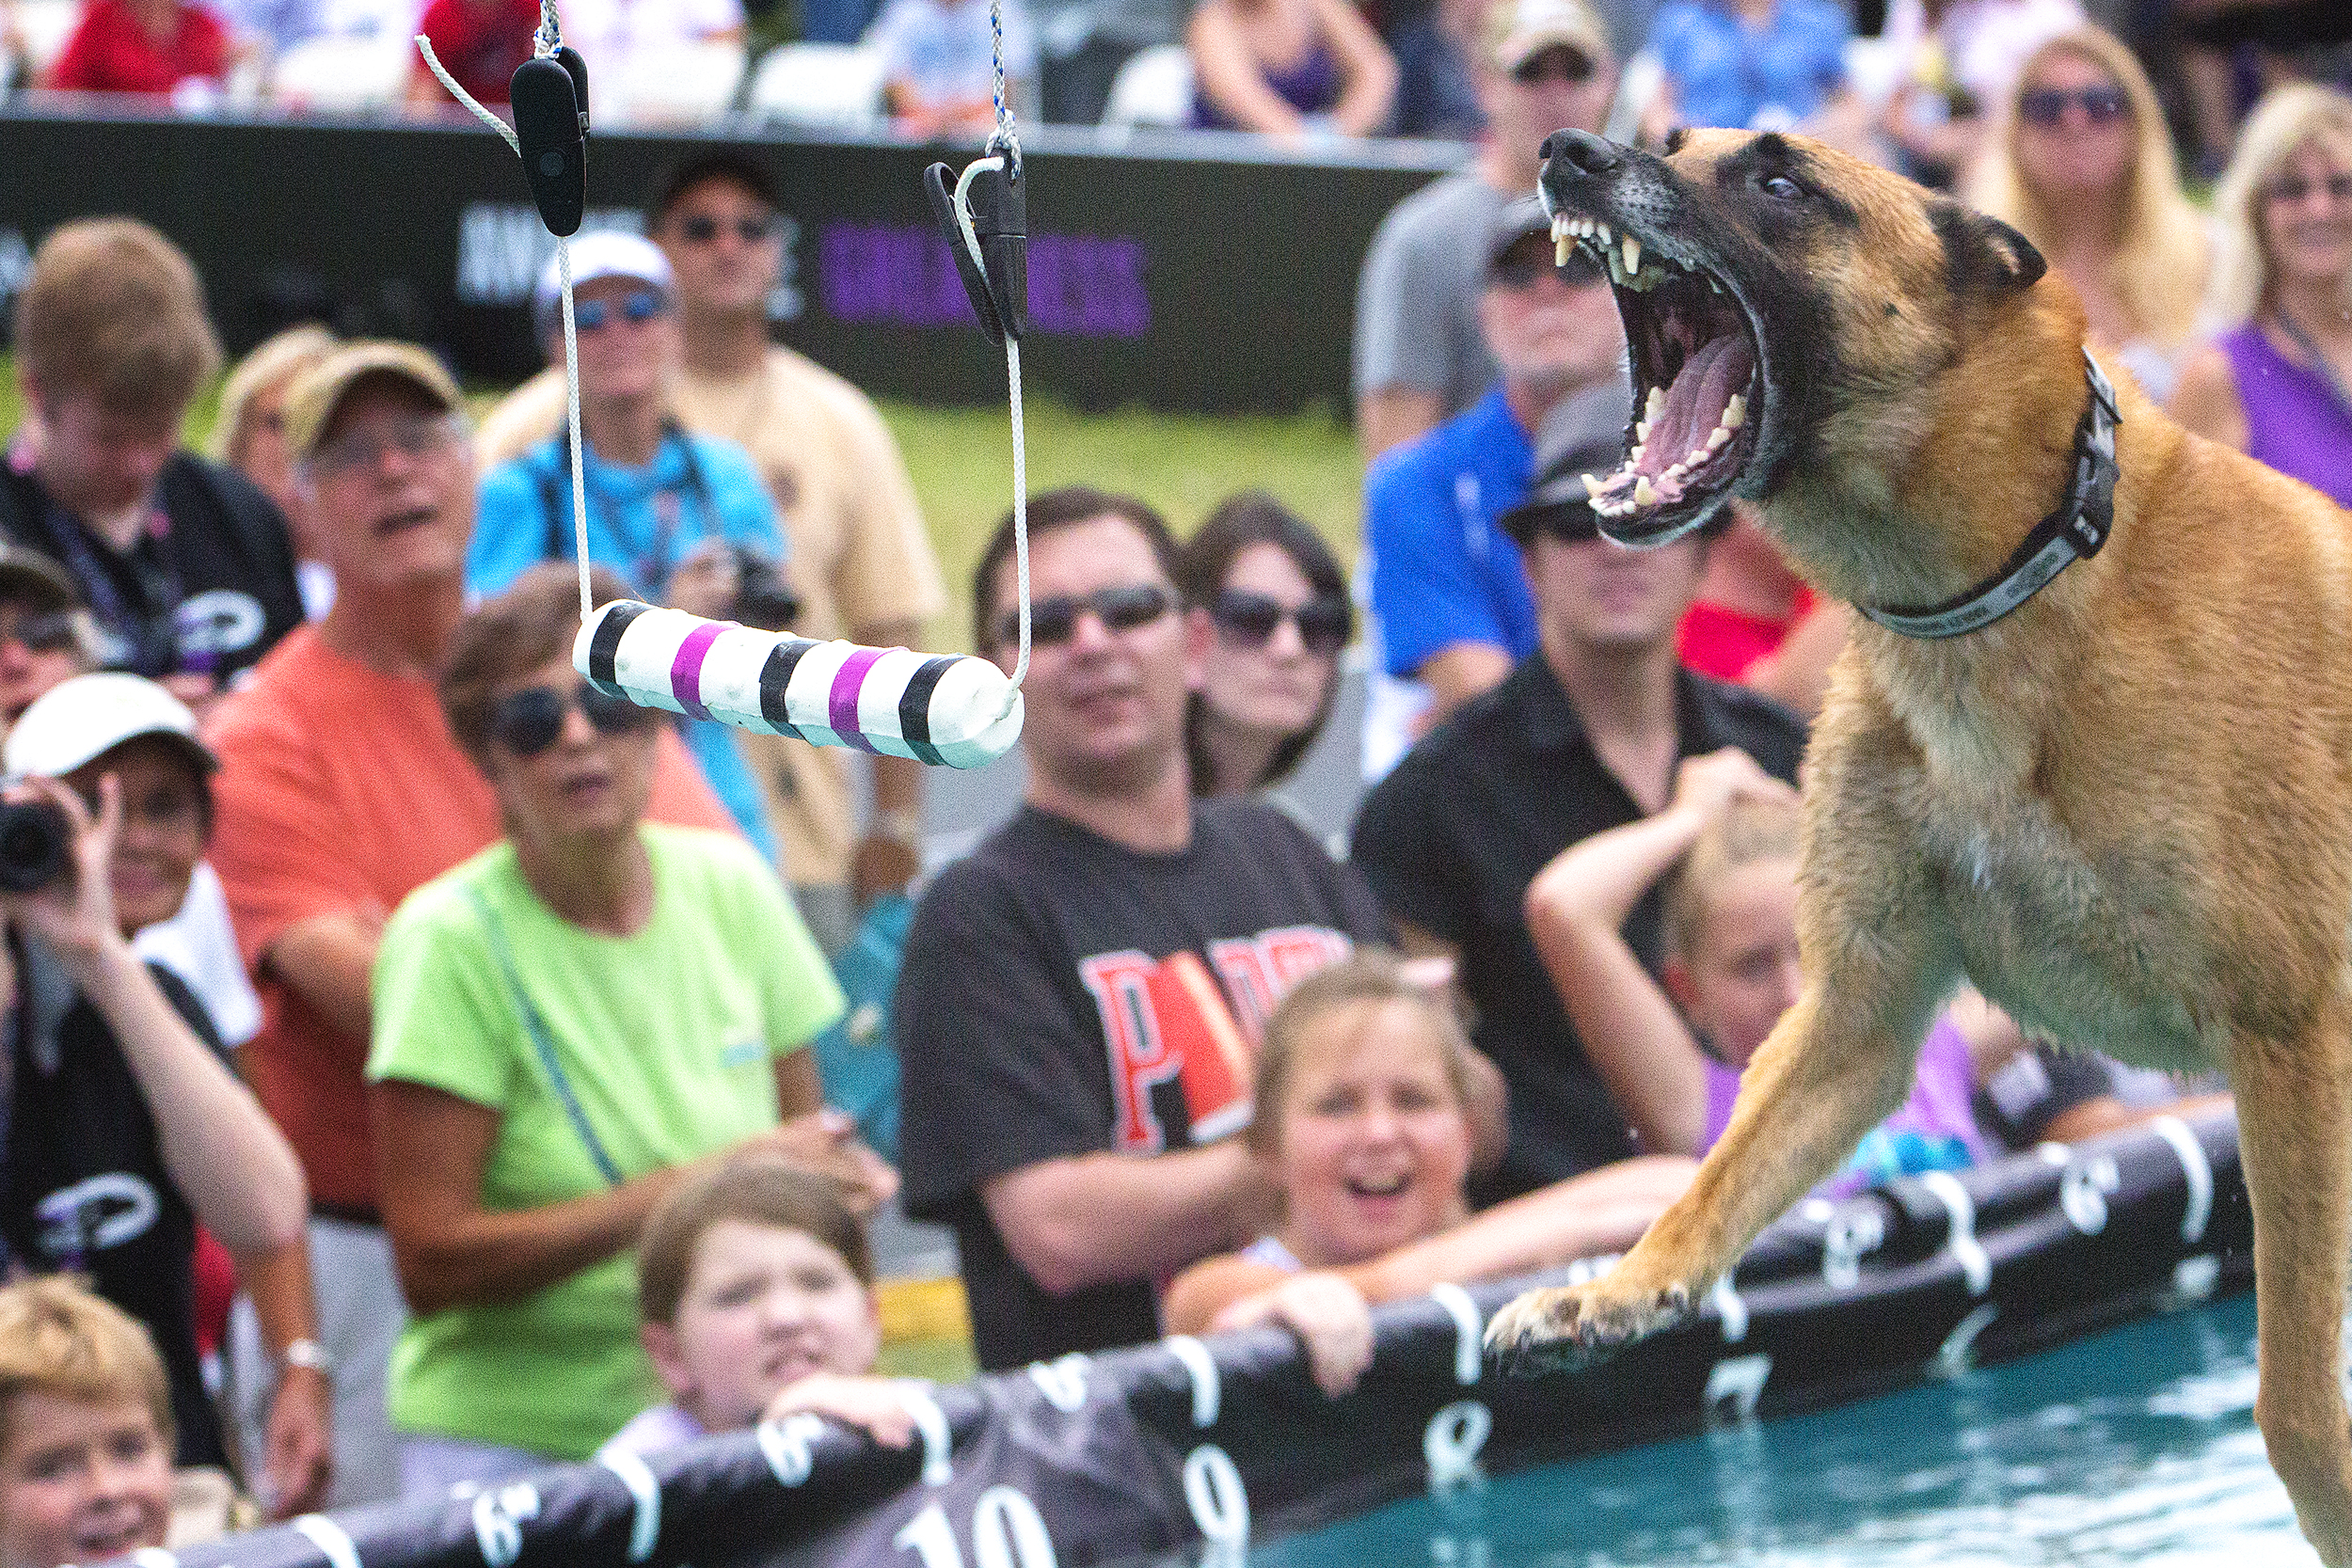 Baxter, trained by Tony Lambert, competes in the distance challenge..jpg